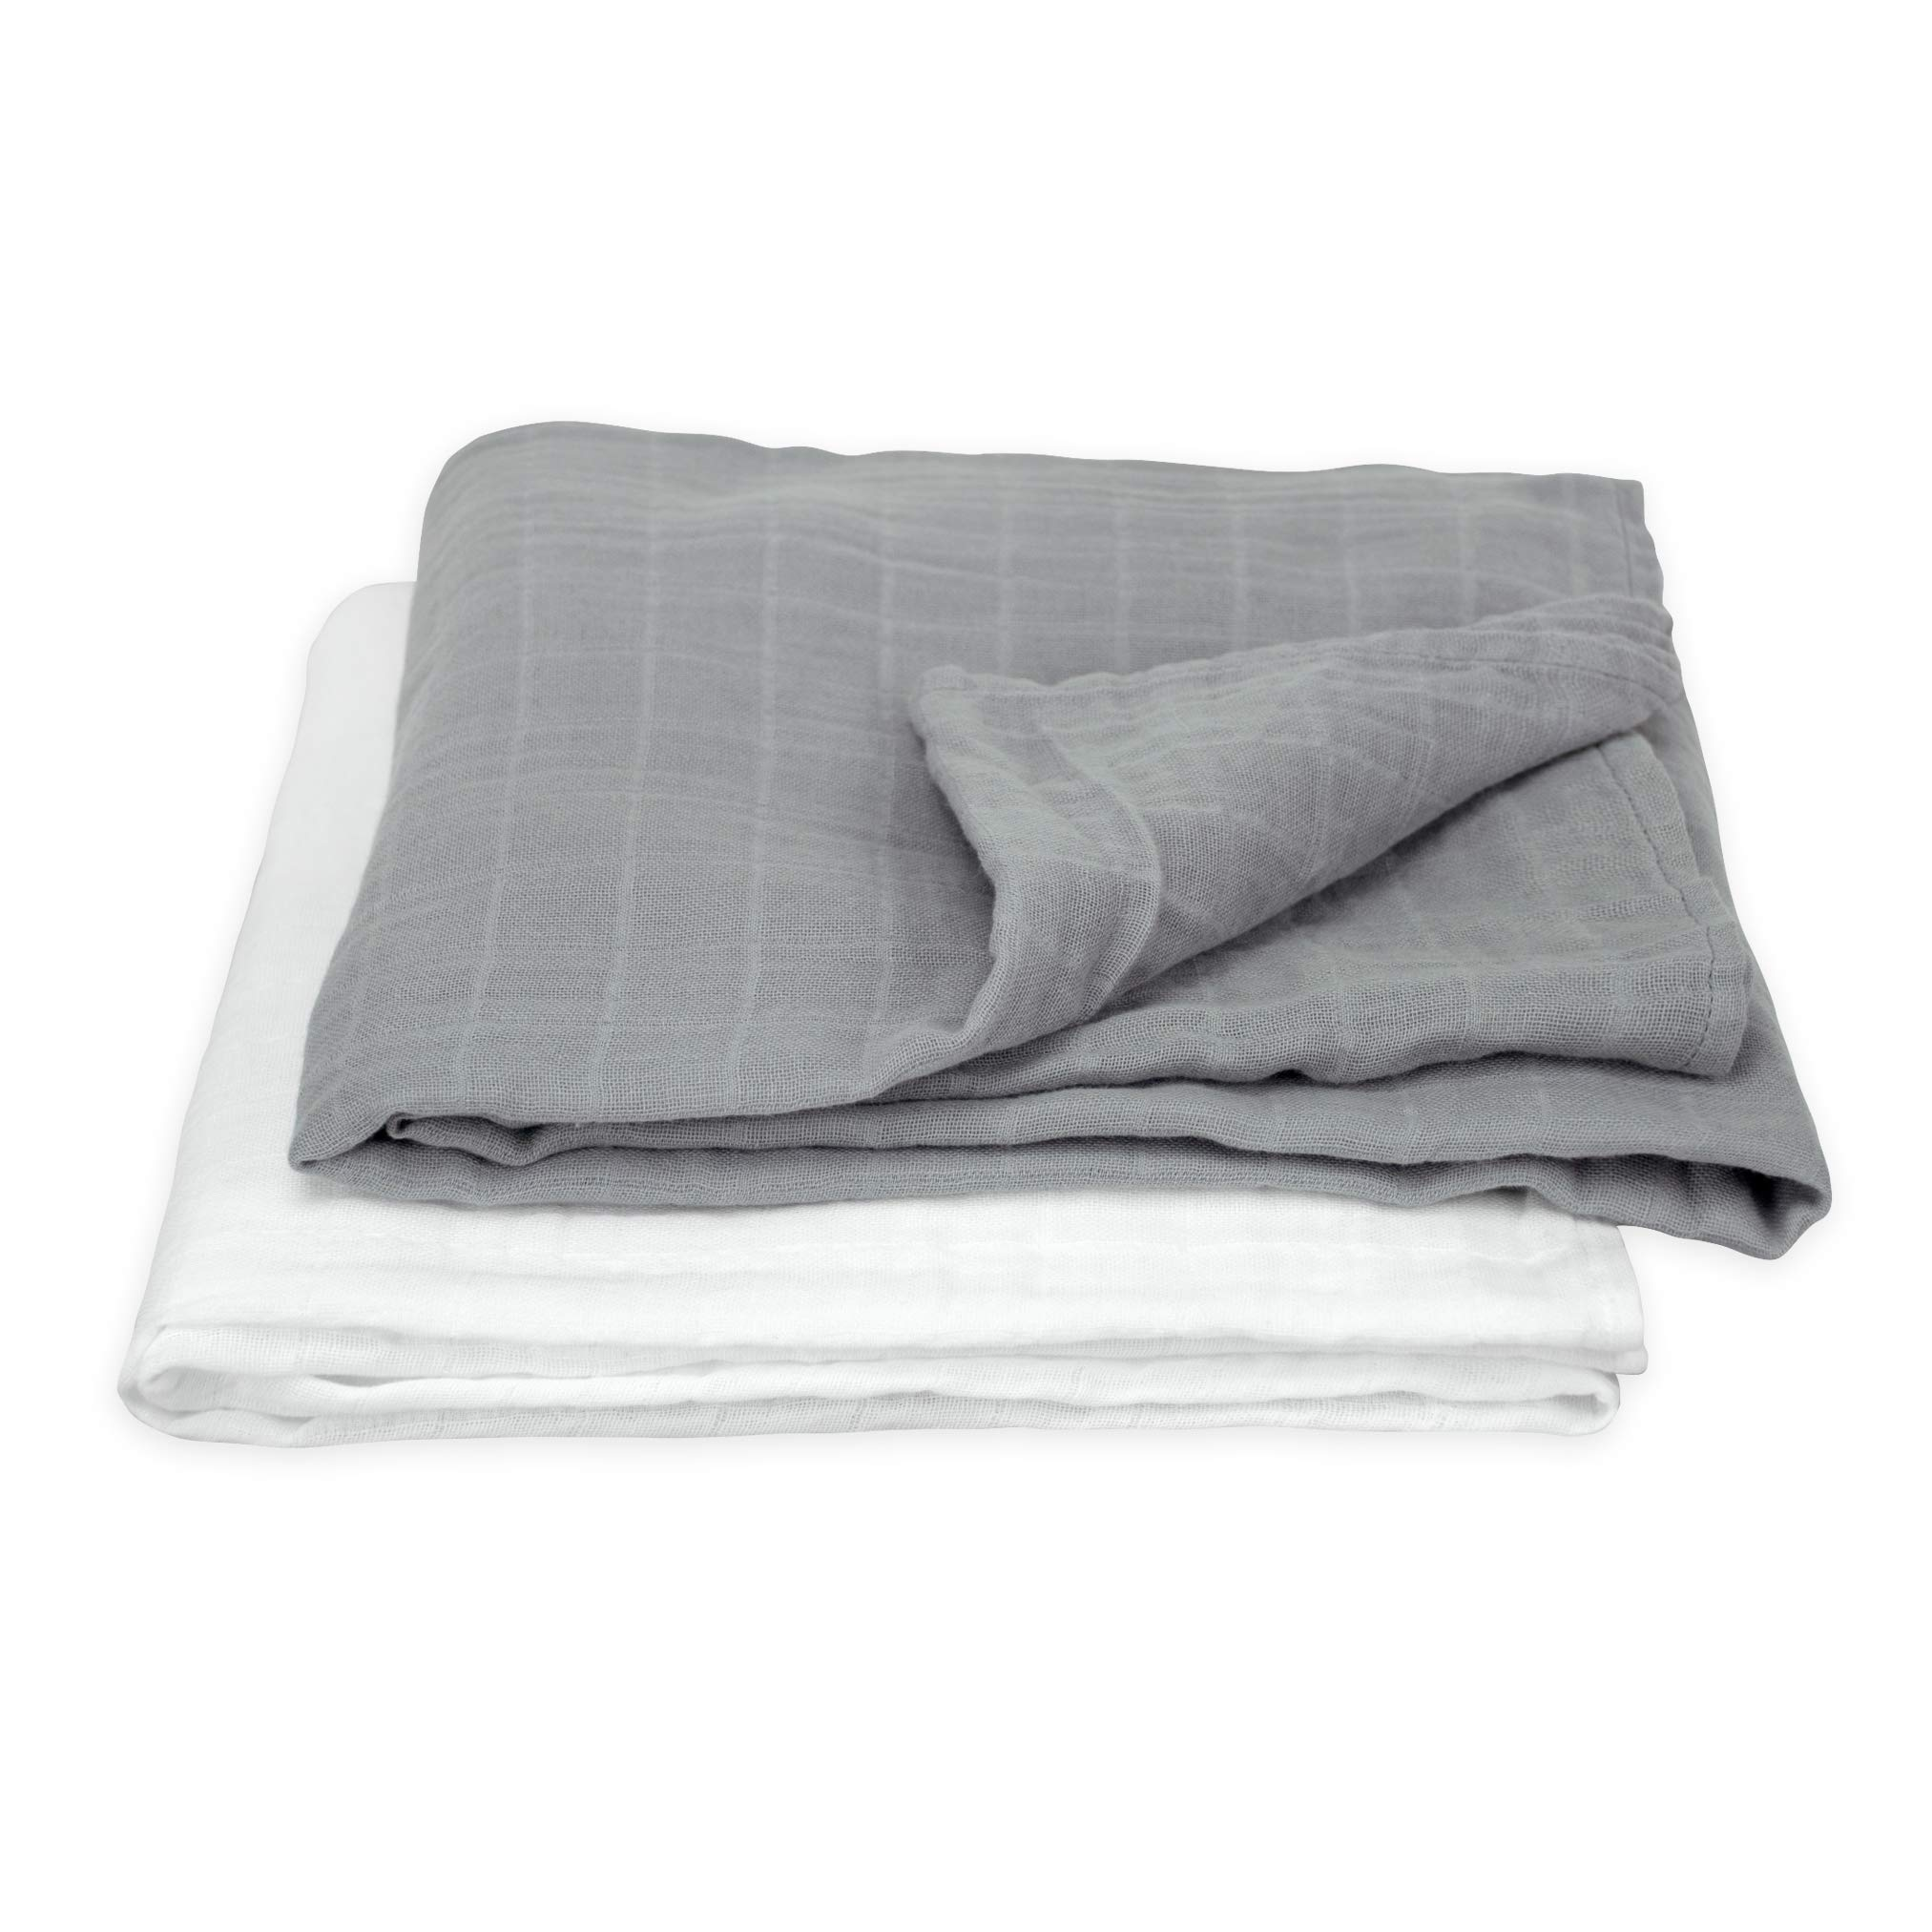 green sprouts Muslin Swaddle Blankets made from Organic Cotton (2 pk) | Generously sized